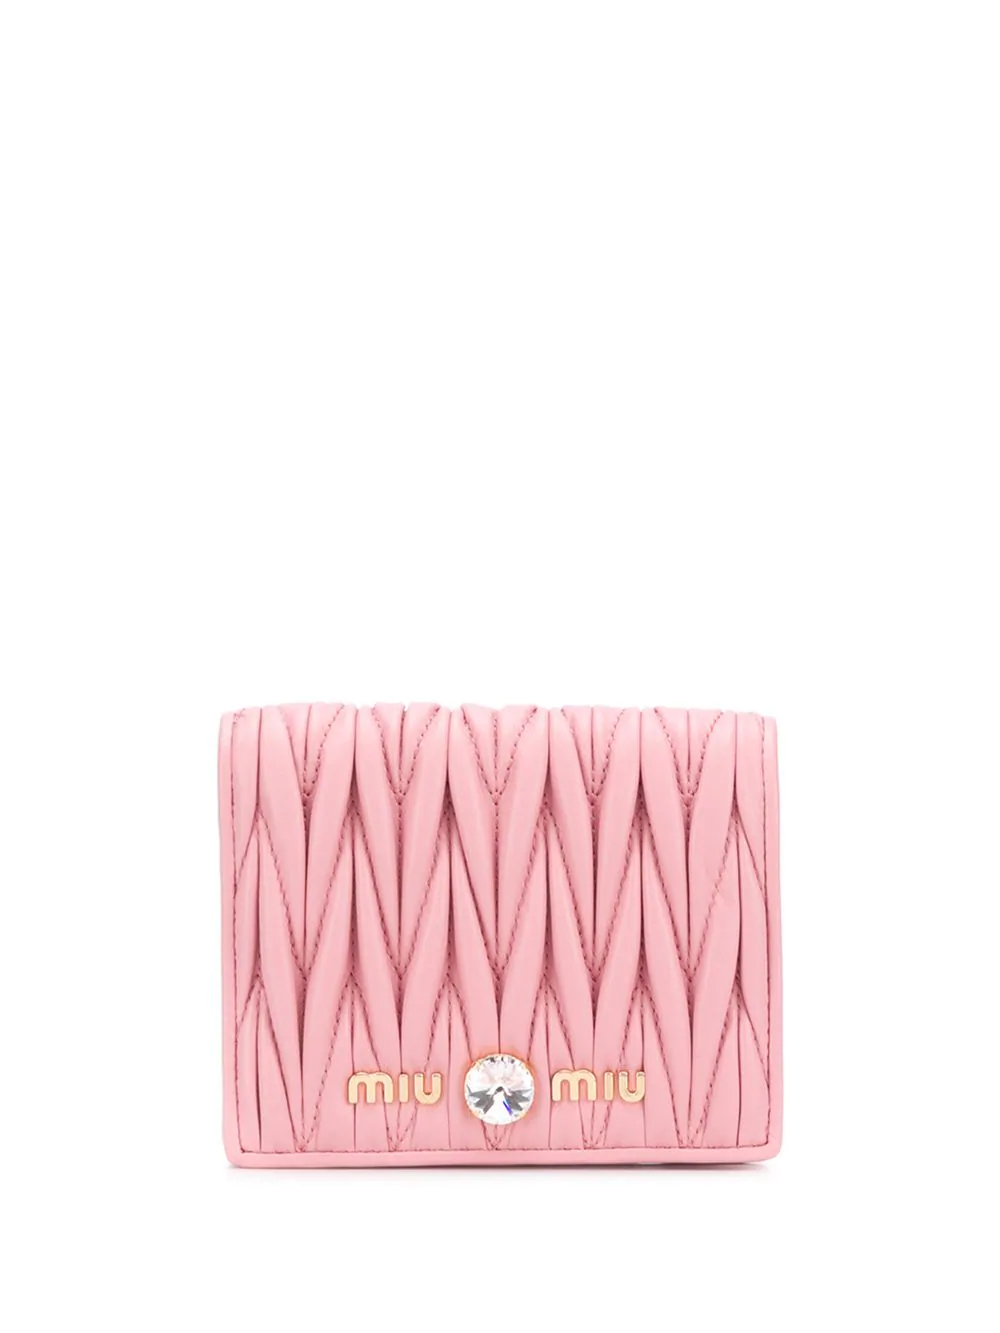 3224075281a Miu Miu Matelassé Leather Wallet - Pink